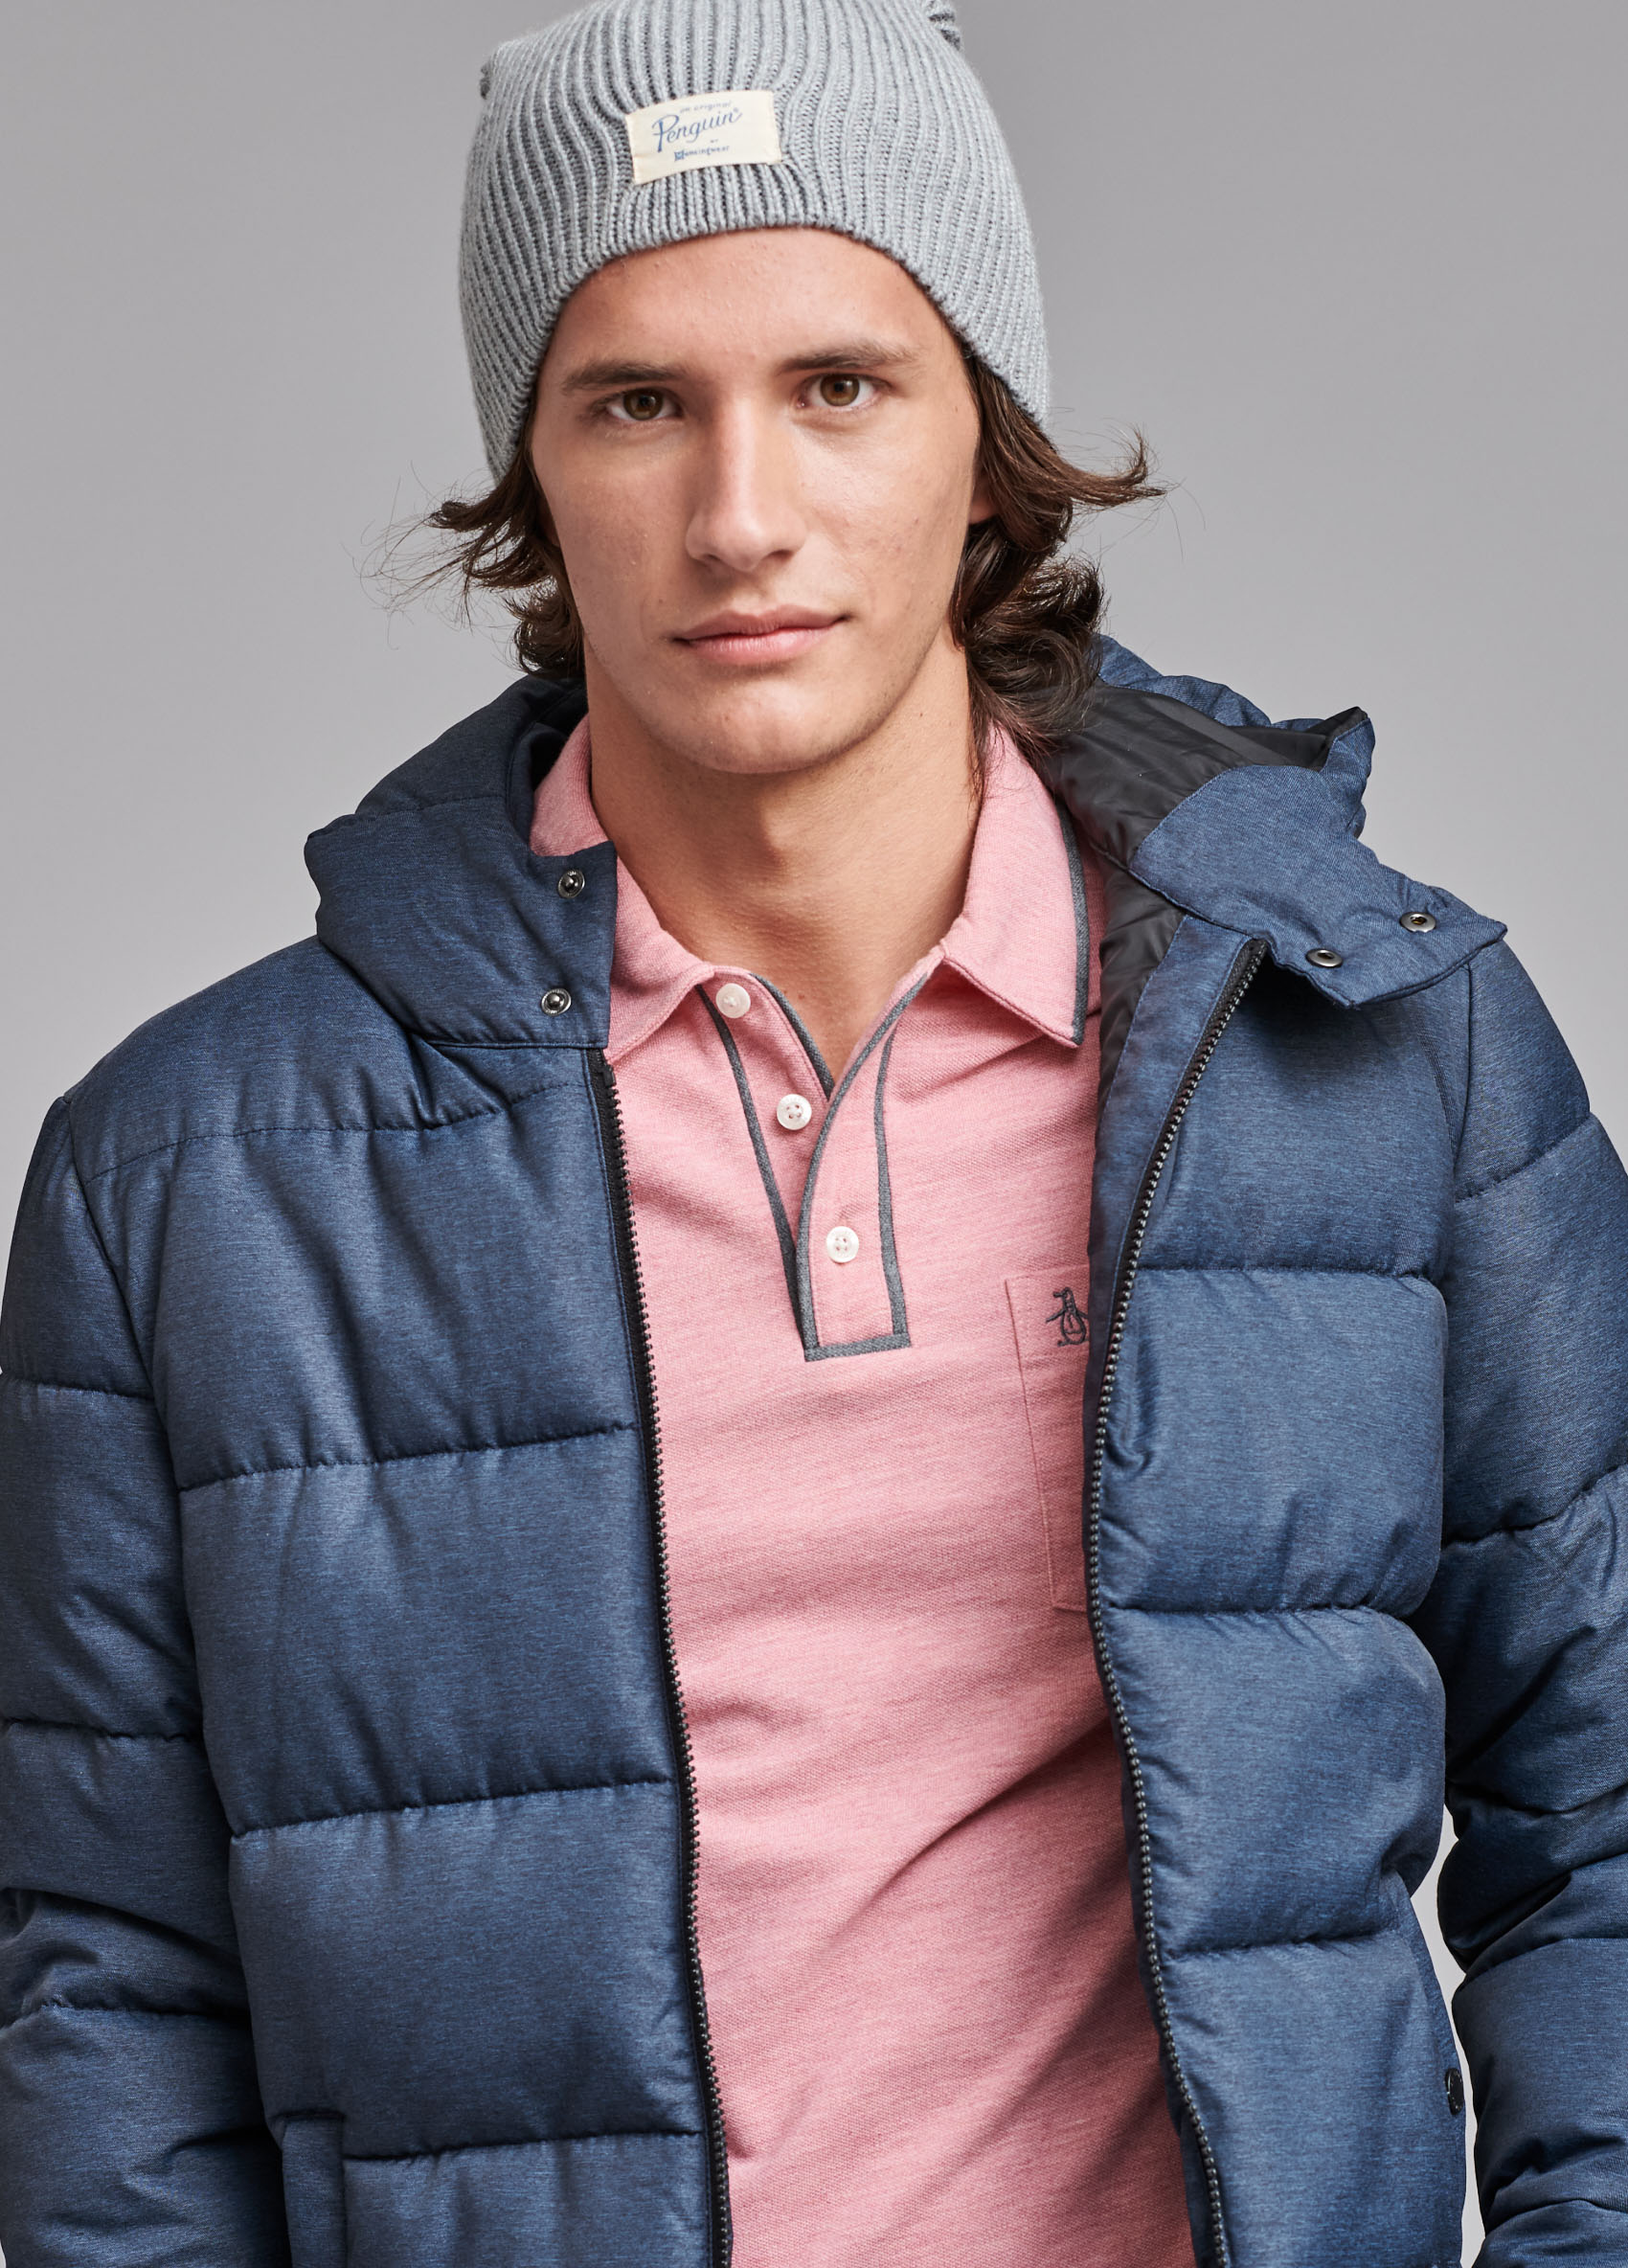 penguin_insulated-melange-puffer-jacket_01-20-2019__picture-8935